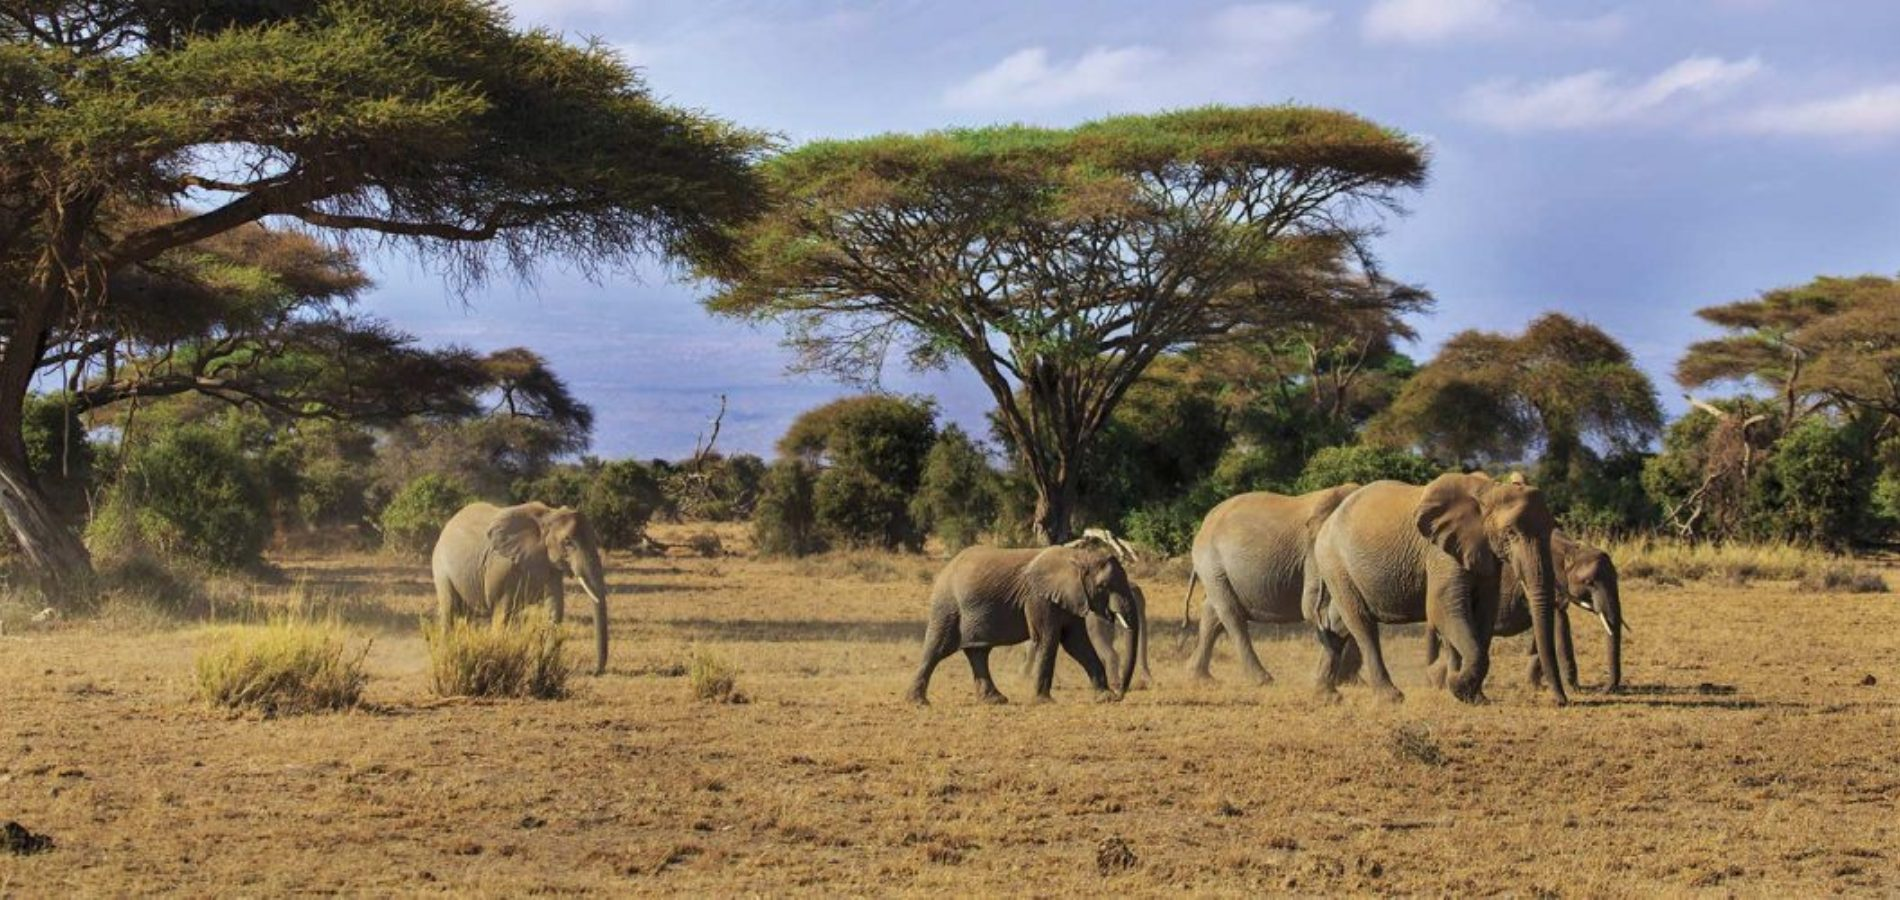 East Africa Tour Package